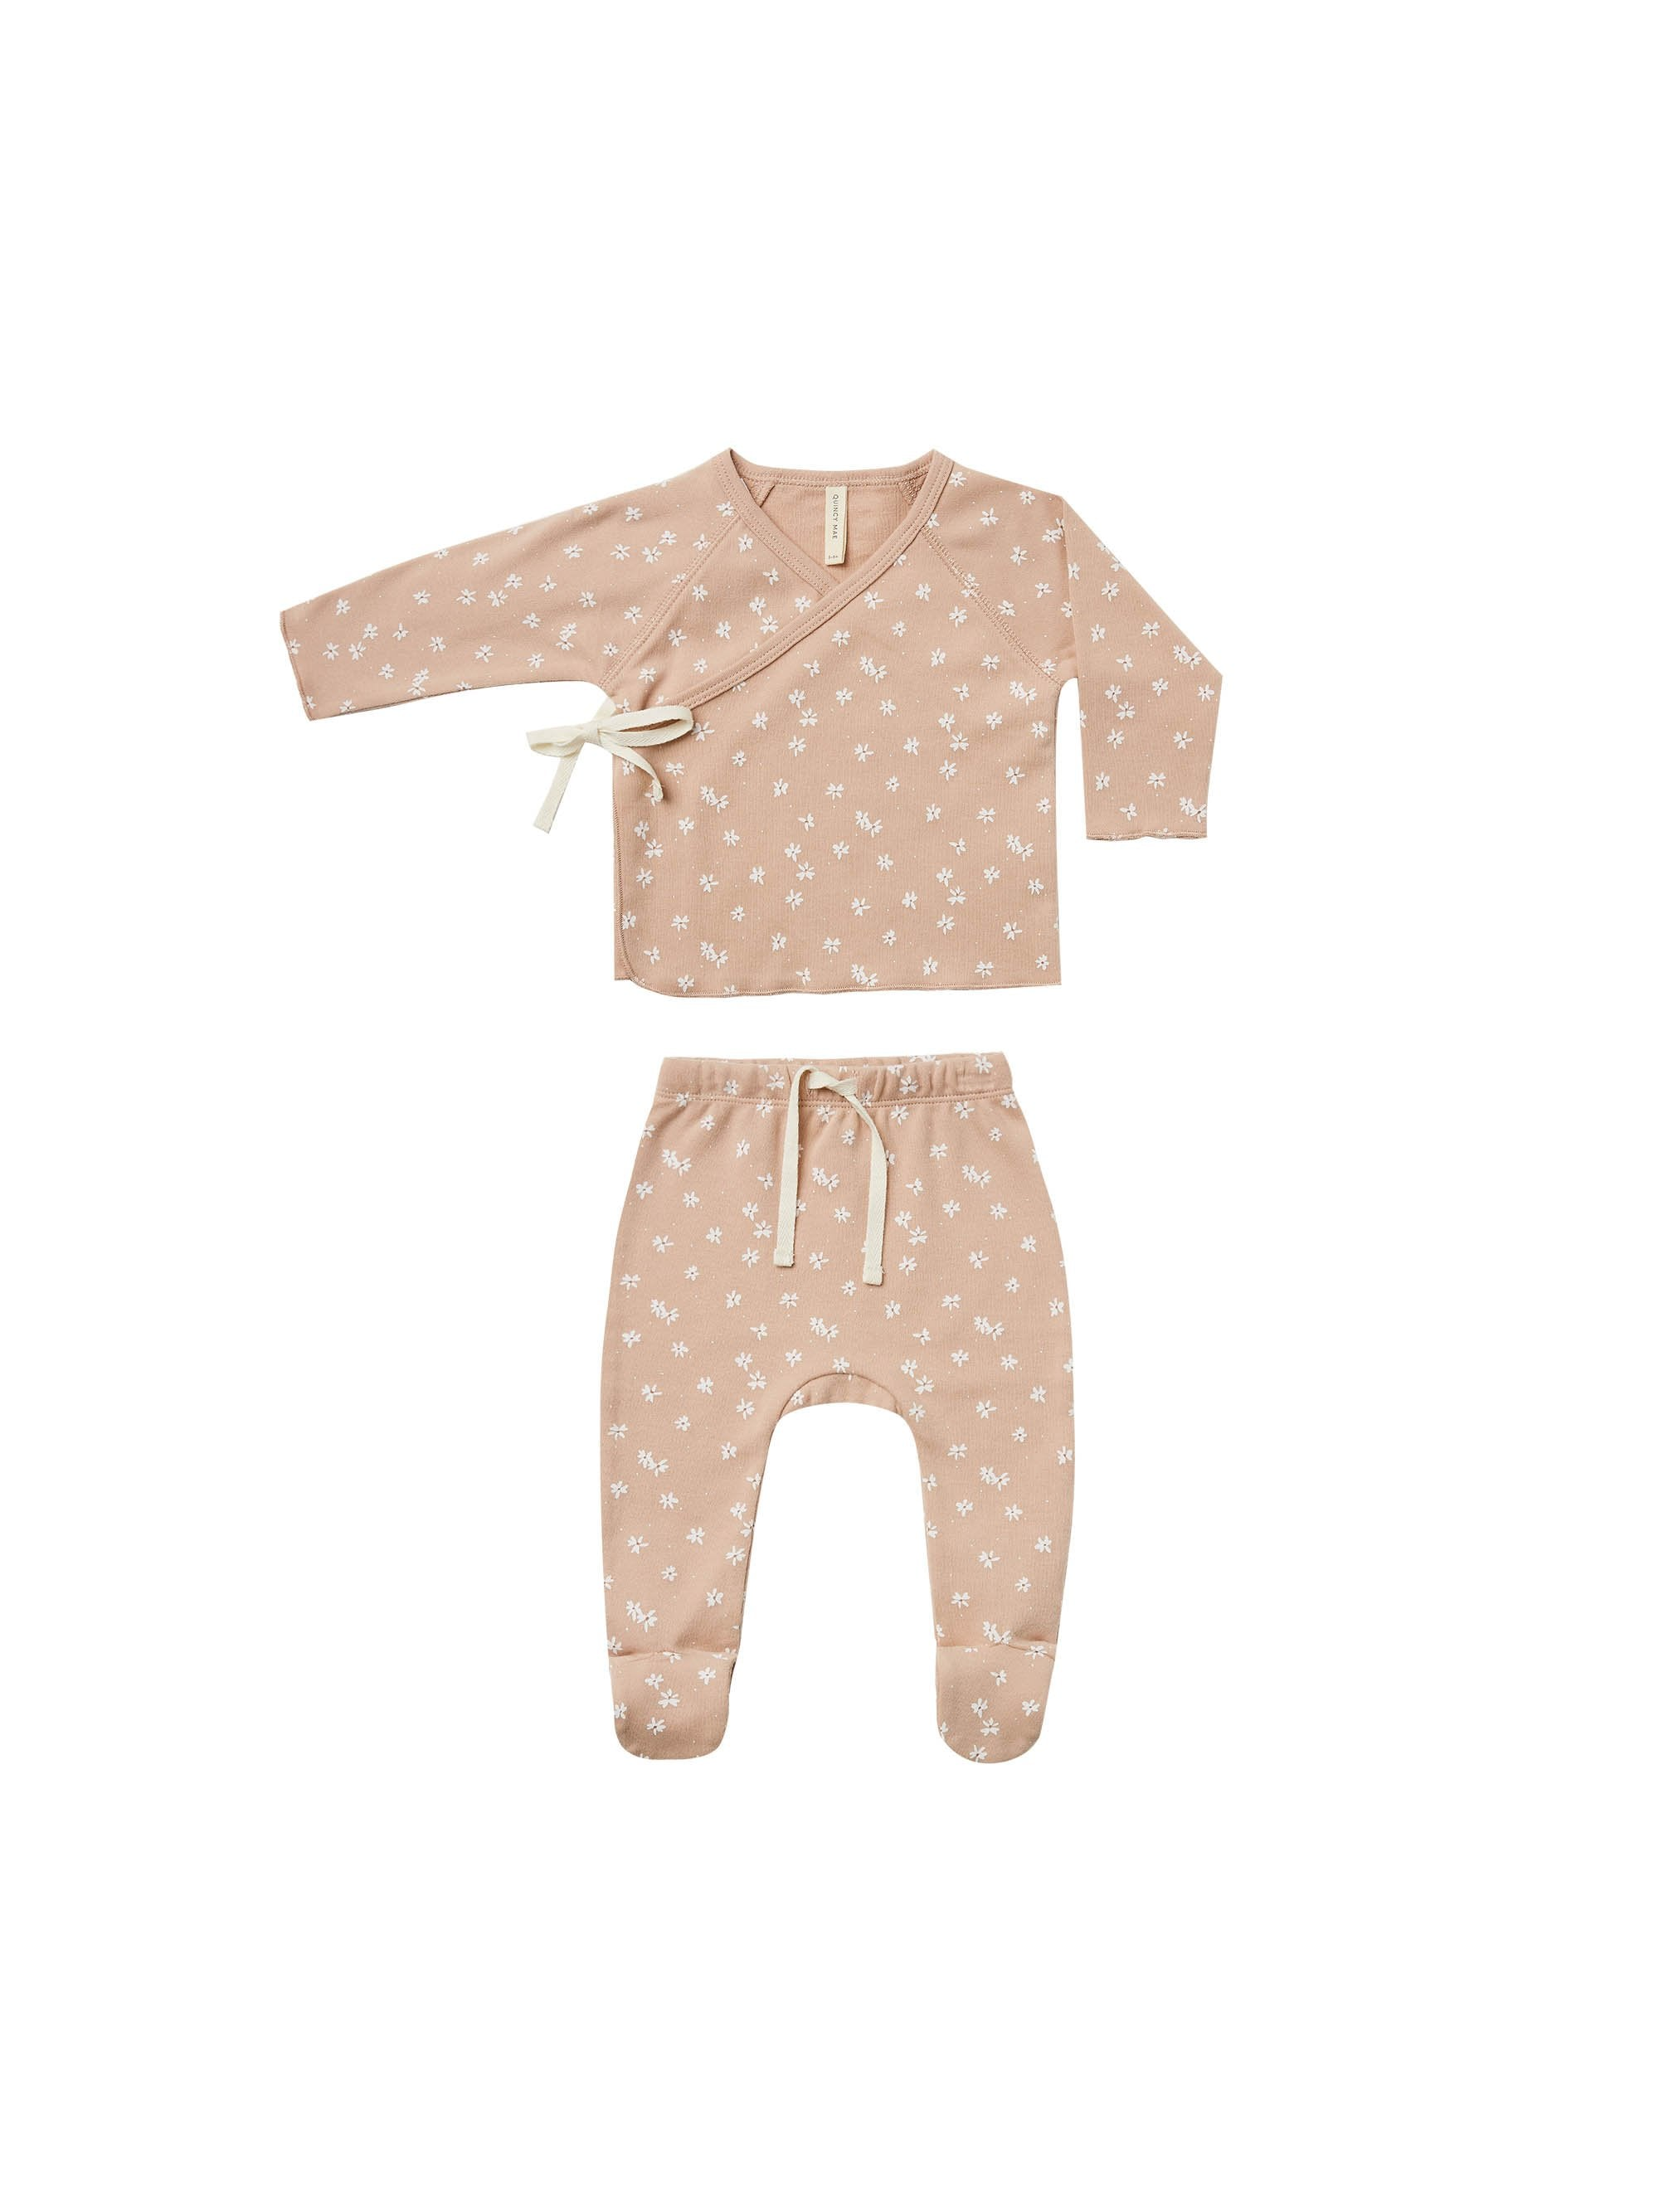 Load image into Gallery viewer, Quincy Mae Kimono Top + Footed Pant Set Blossom Petal